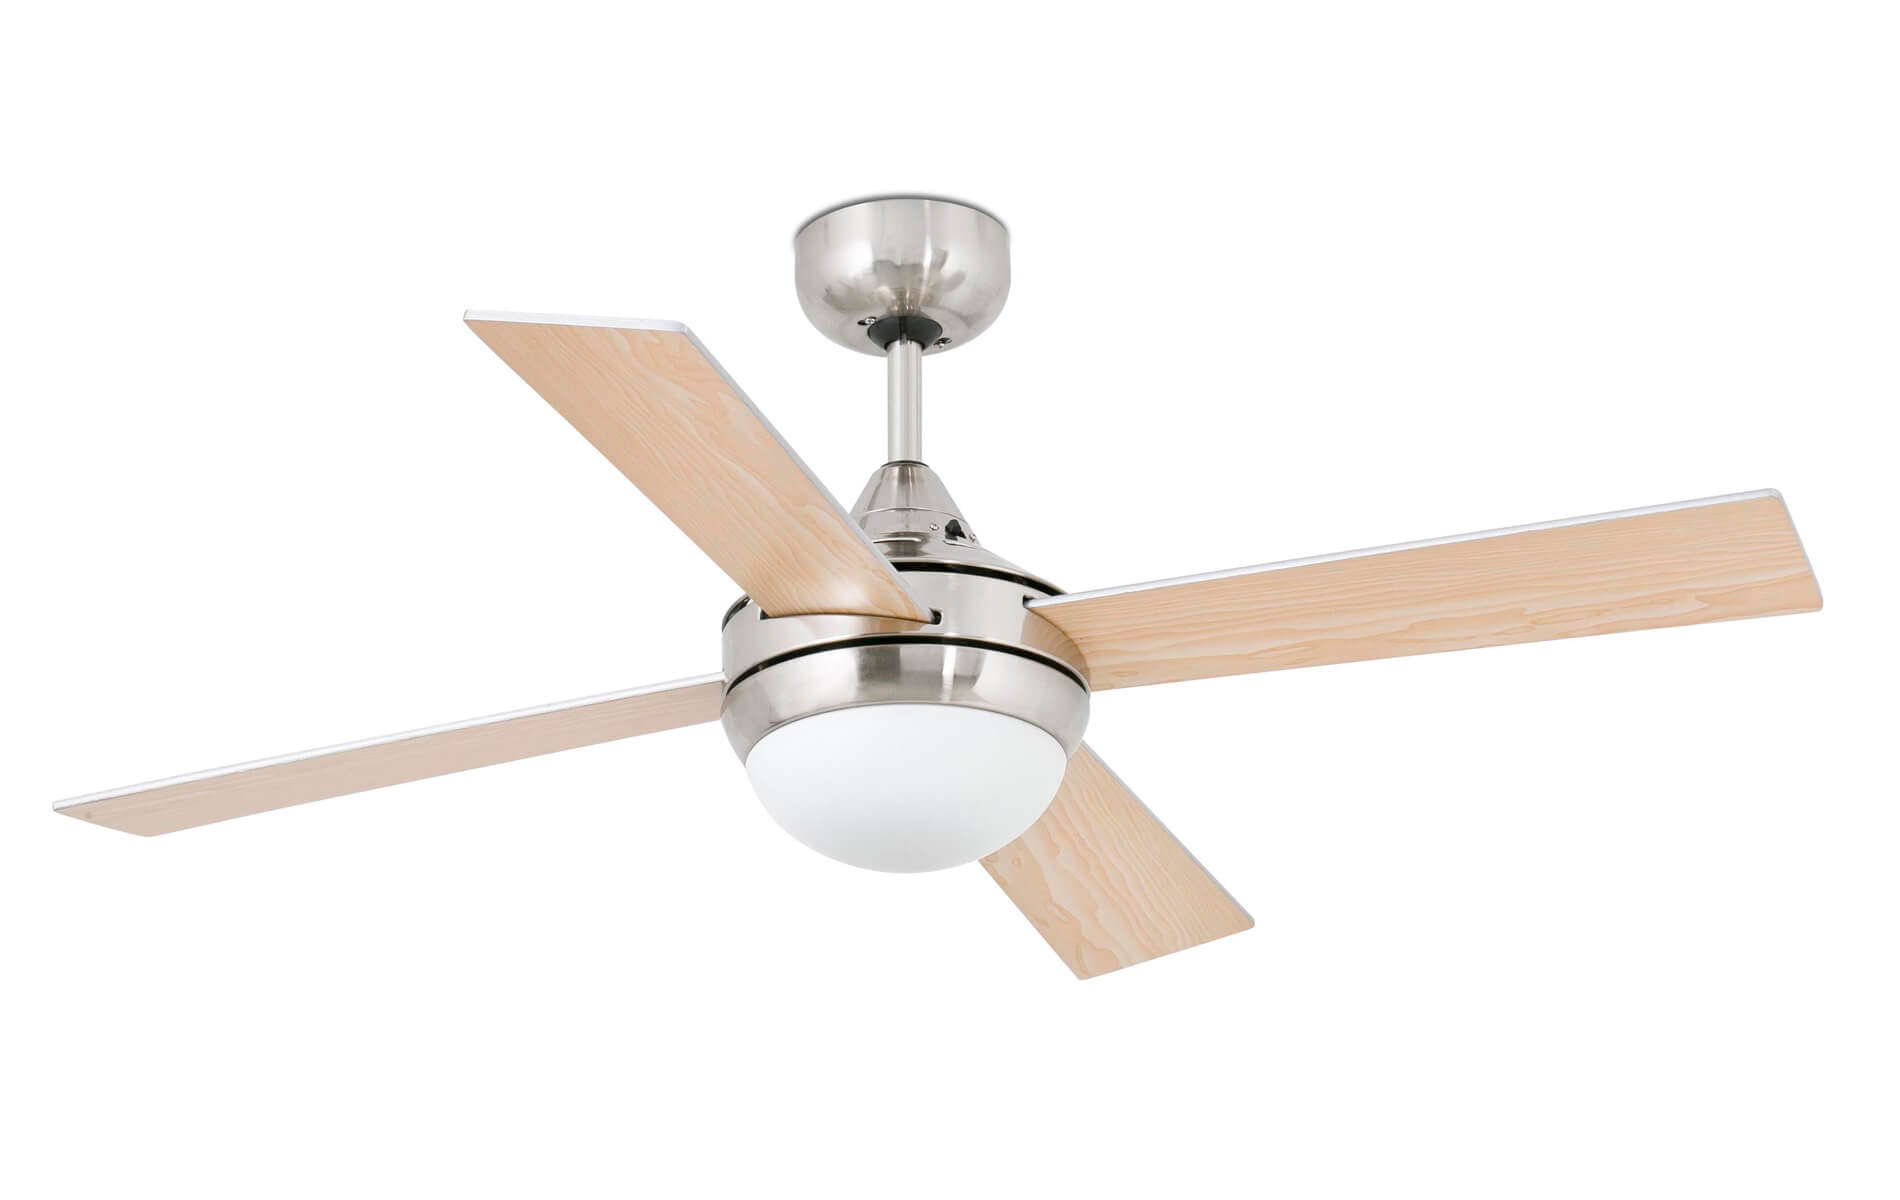 More information of Faro MINI ICARIA ceiling fan.